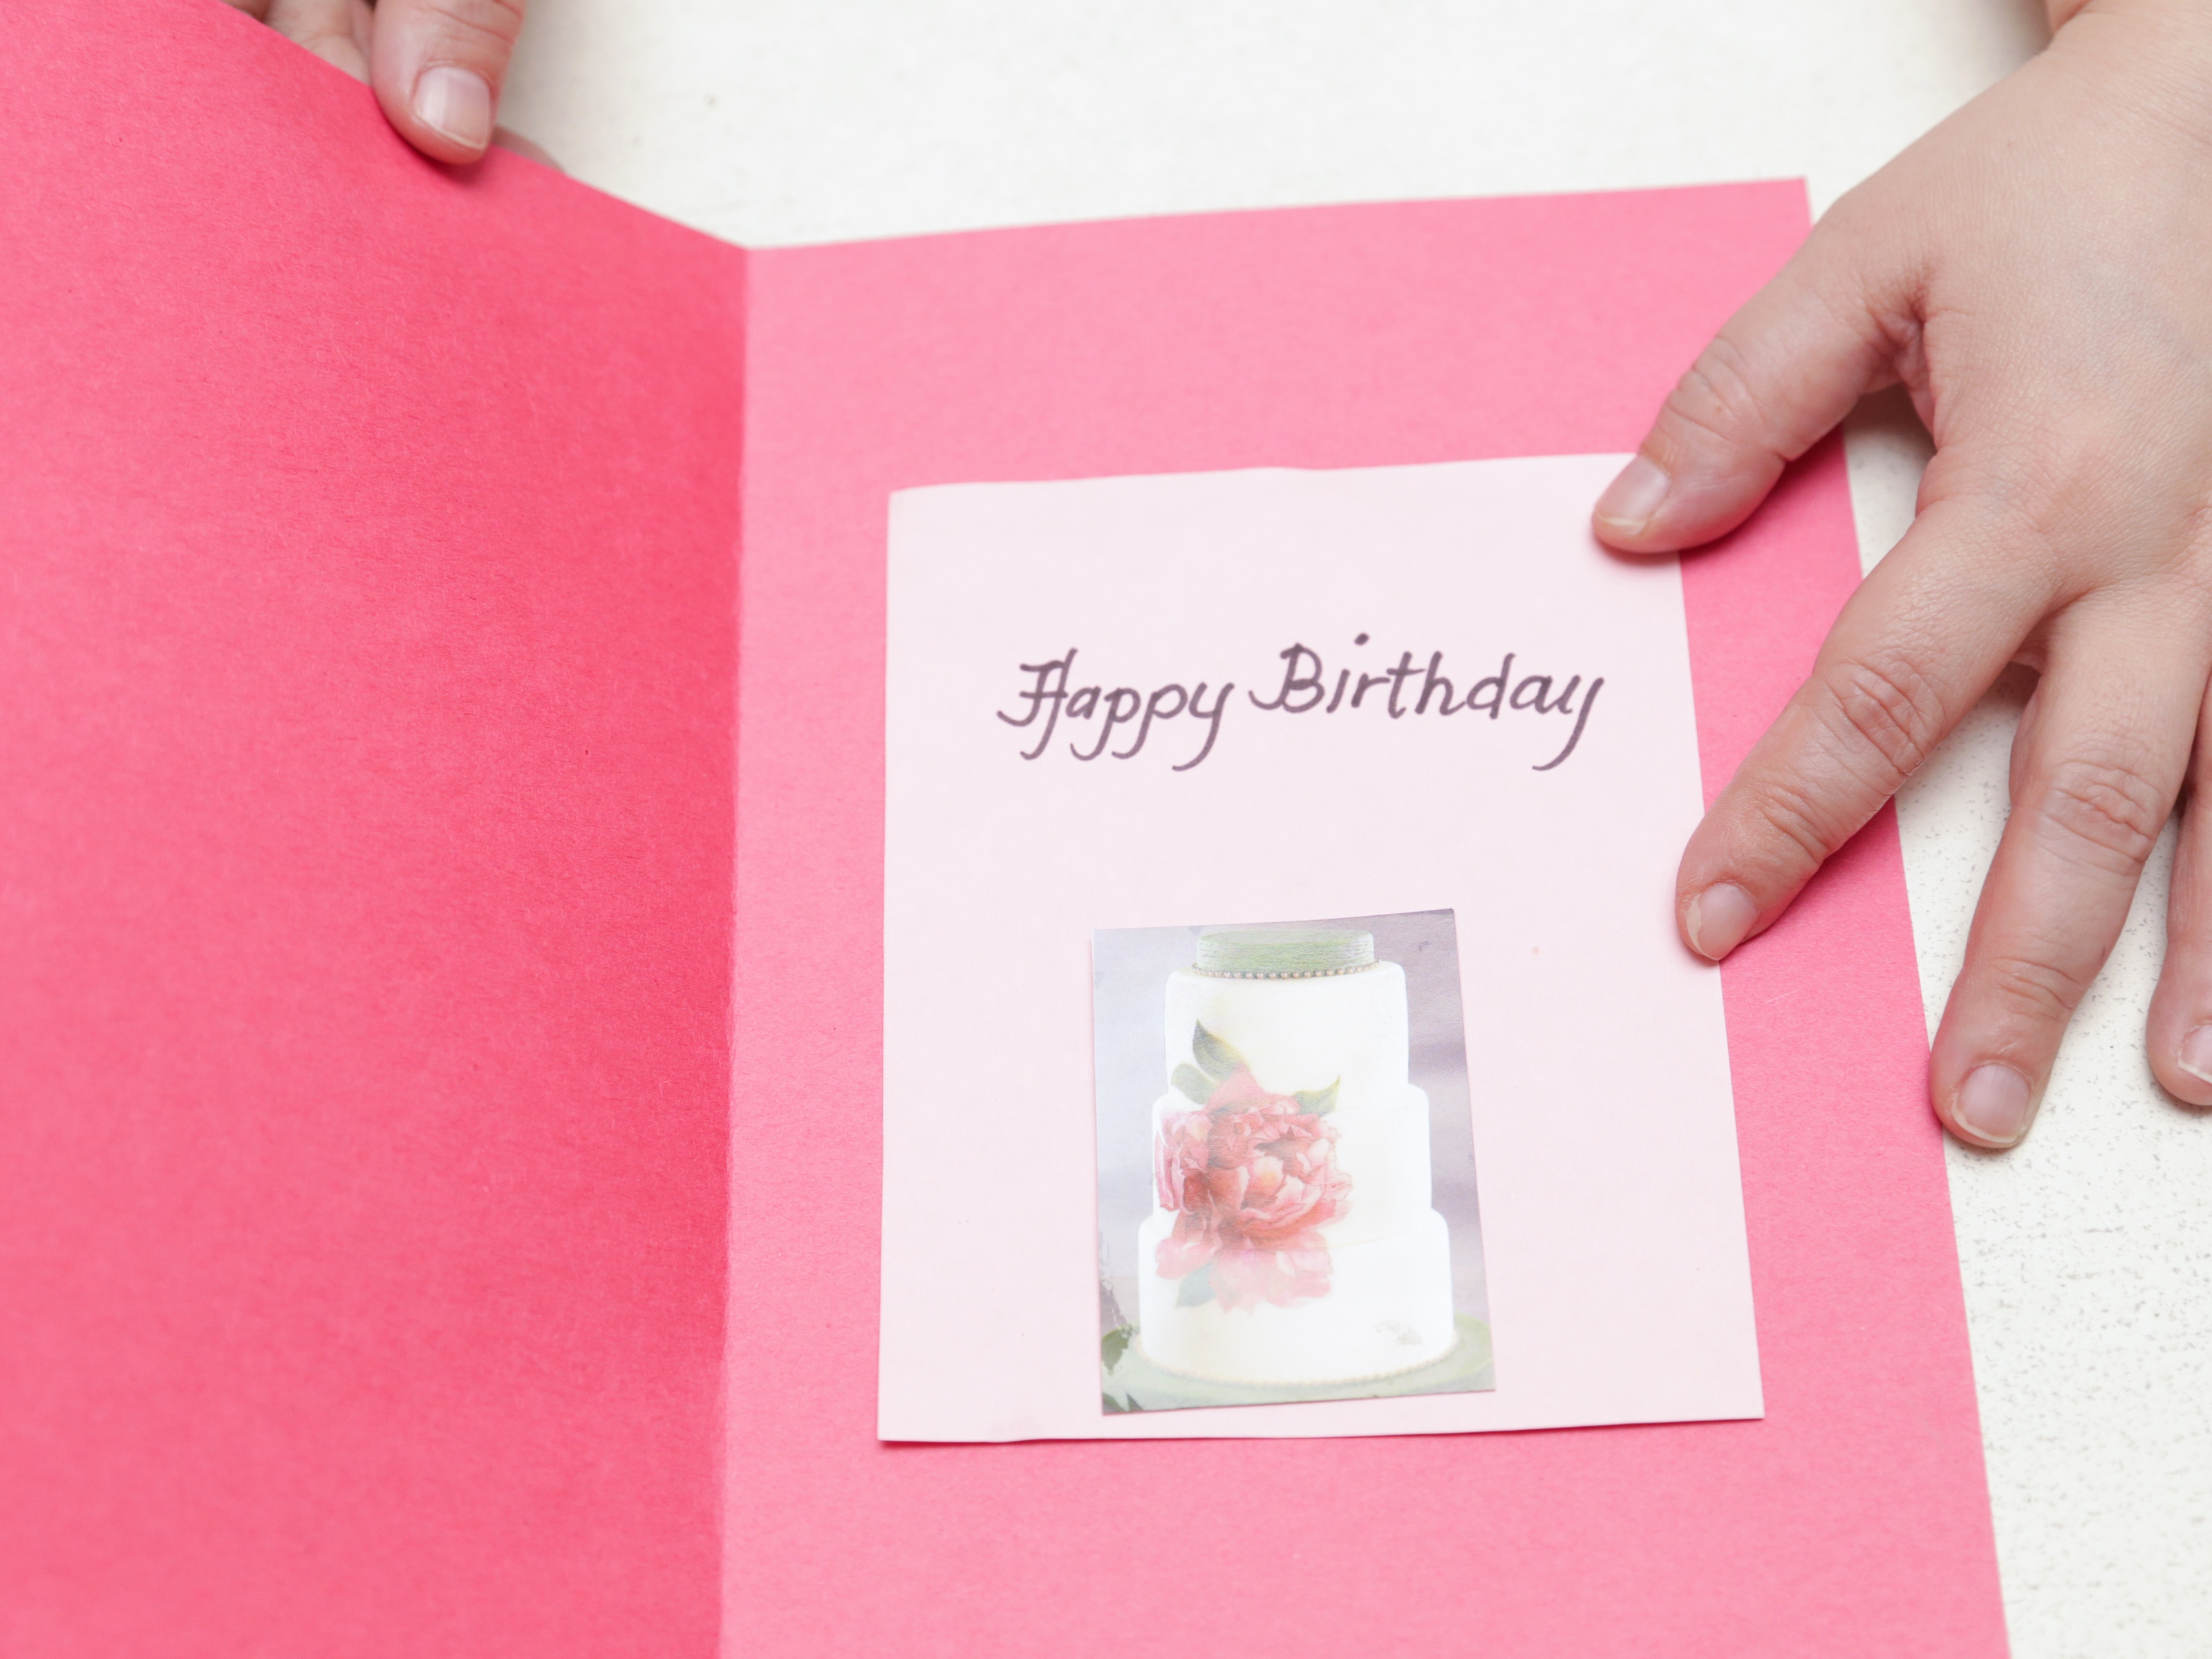 send birthday card to cell phone ; send-a-free-birthday-card-to-cell-phone-beautiful-4-ways-to-make-a-simple-birthday-card-at-home-wikihow-of-send-a-free-birthday-card-to-cell-phone